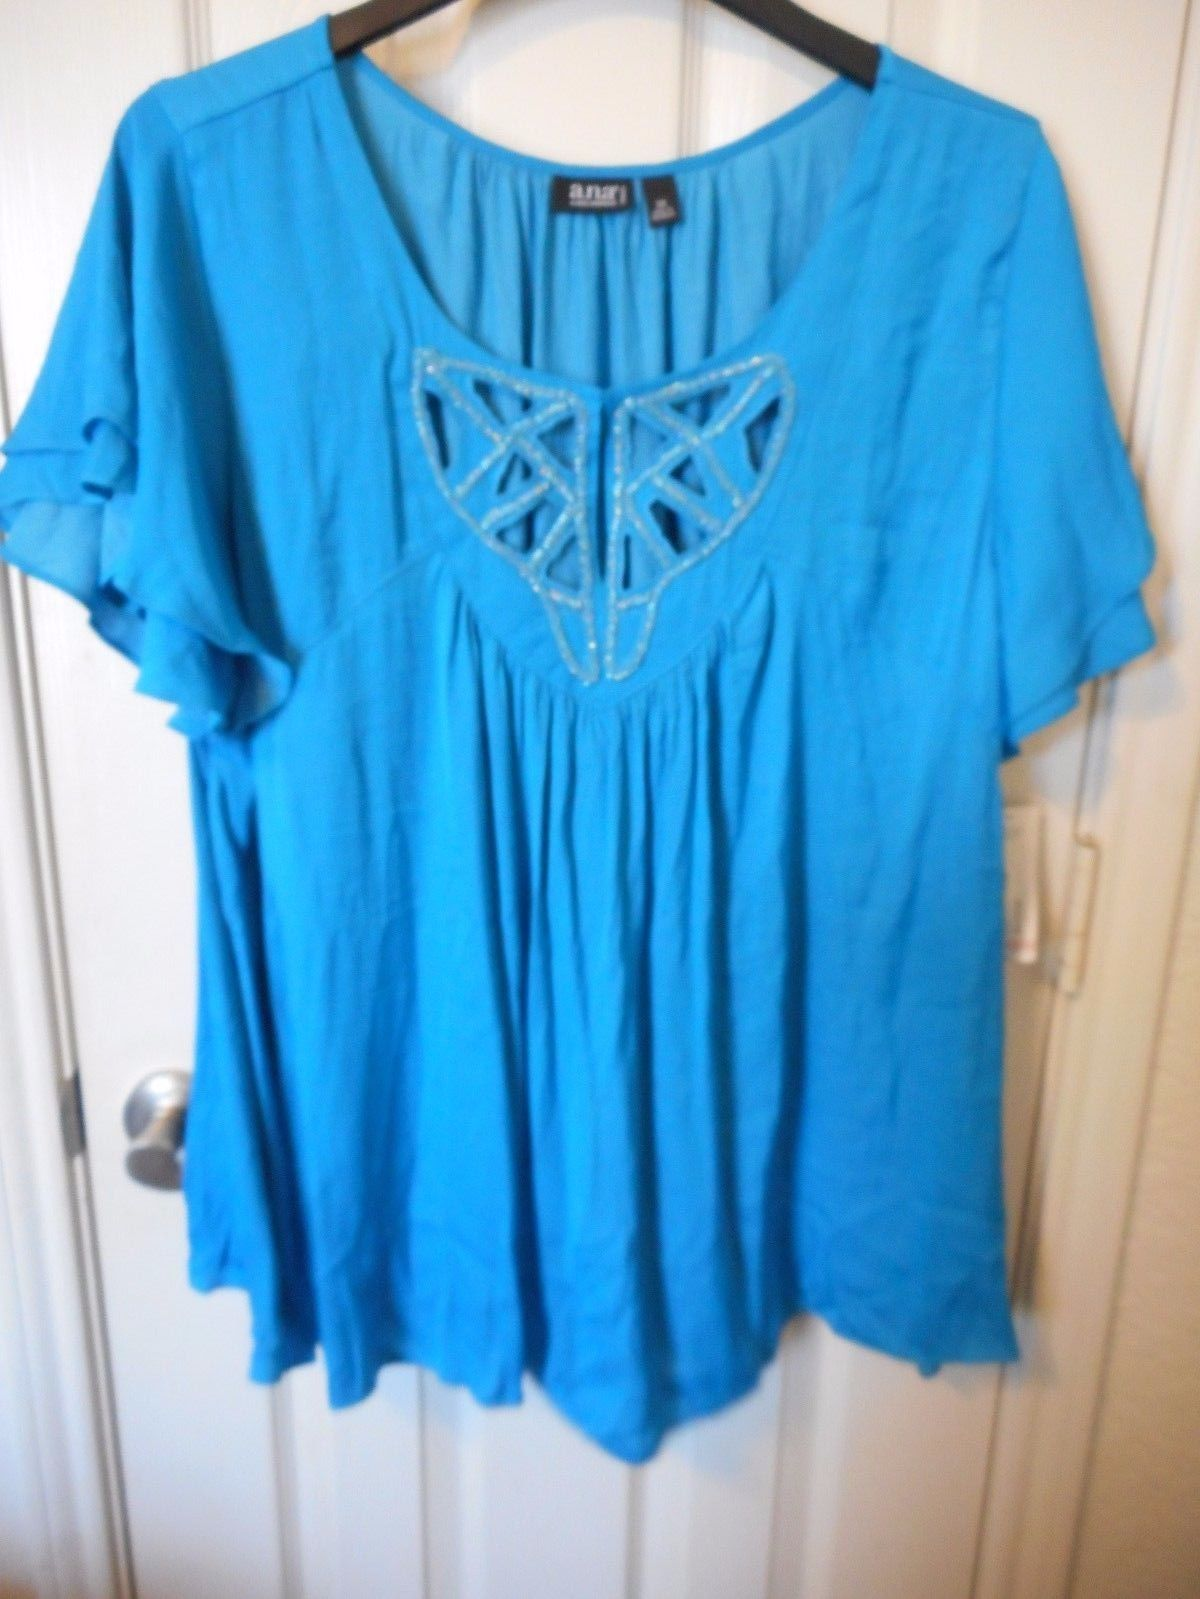 Women's a.n.a. Embellished Short Sleeve Blouse Meridian Blue Size 3X NEW